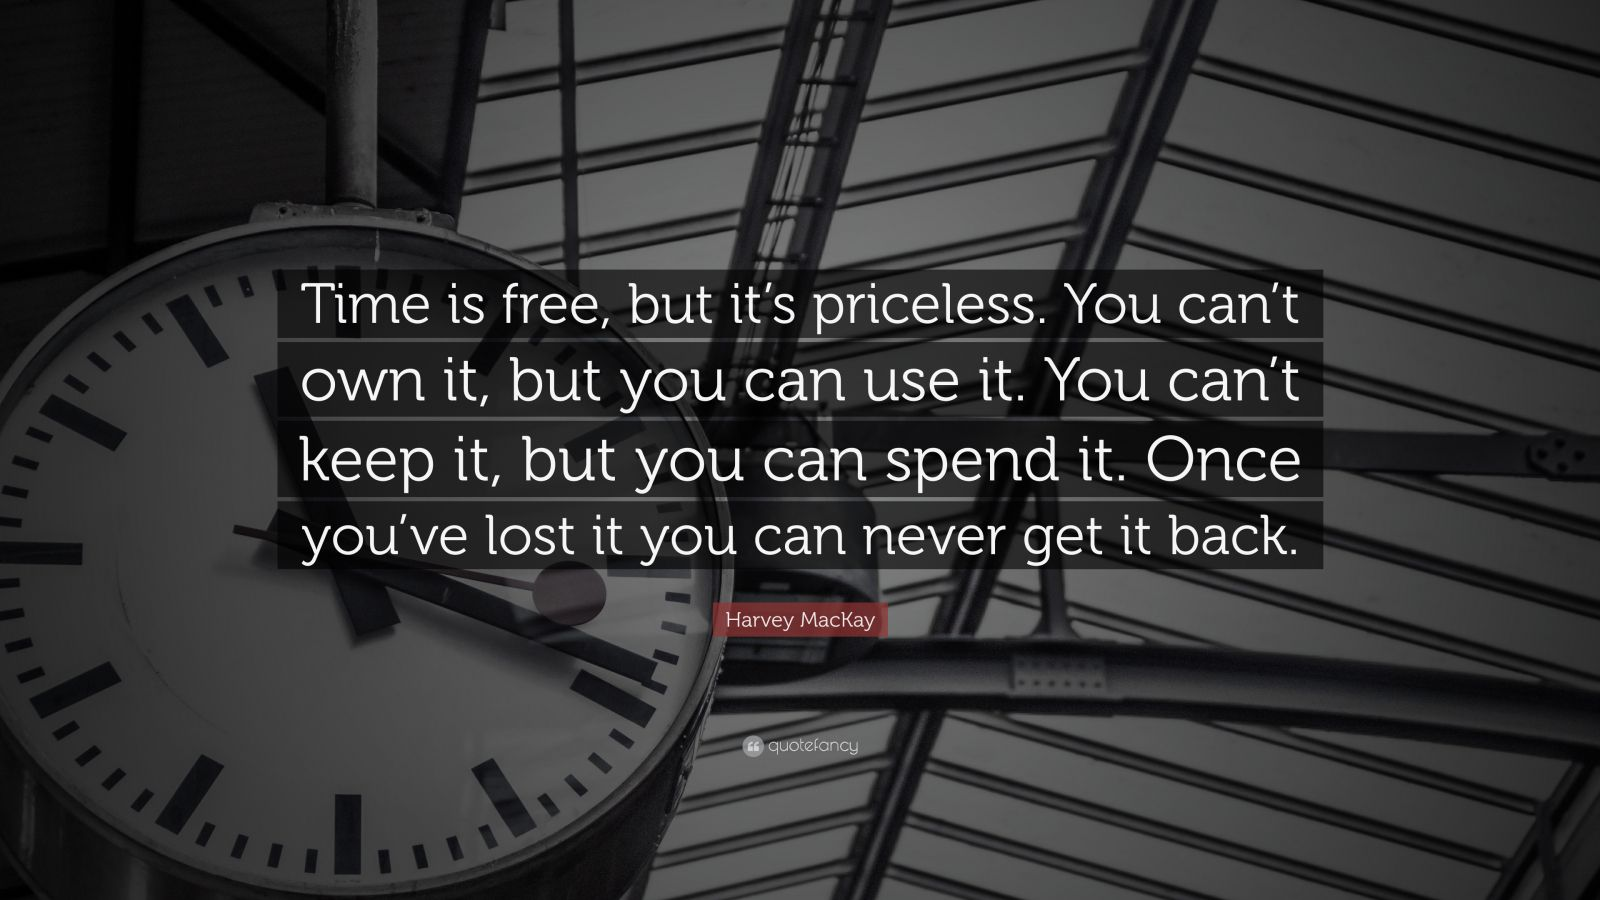 Create Your Own Quote Wallpaper Harvey Mackay Quote Time Is Free But It S Priceless